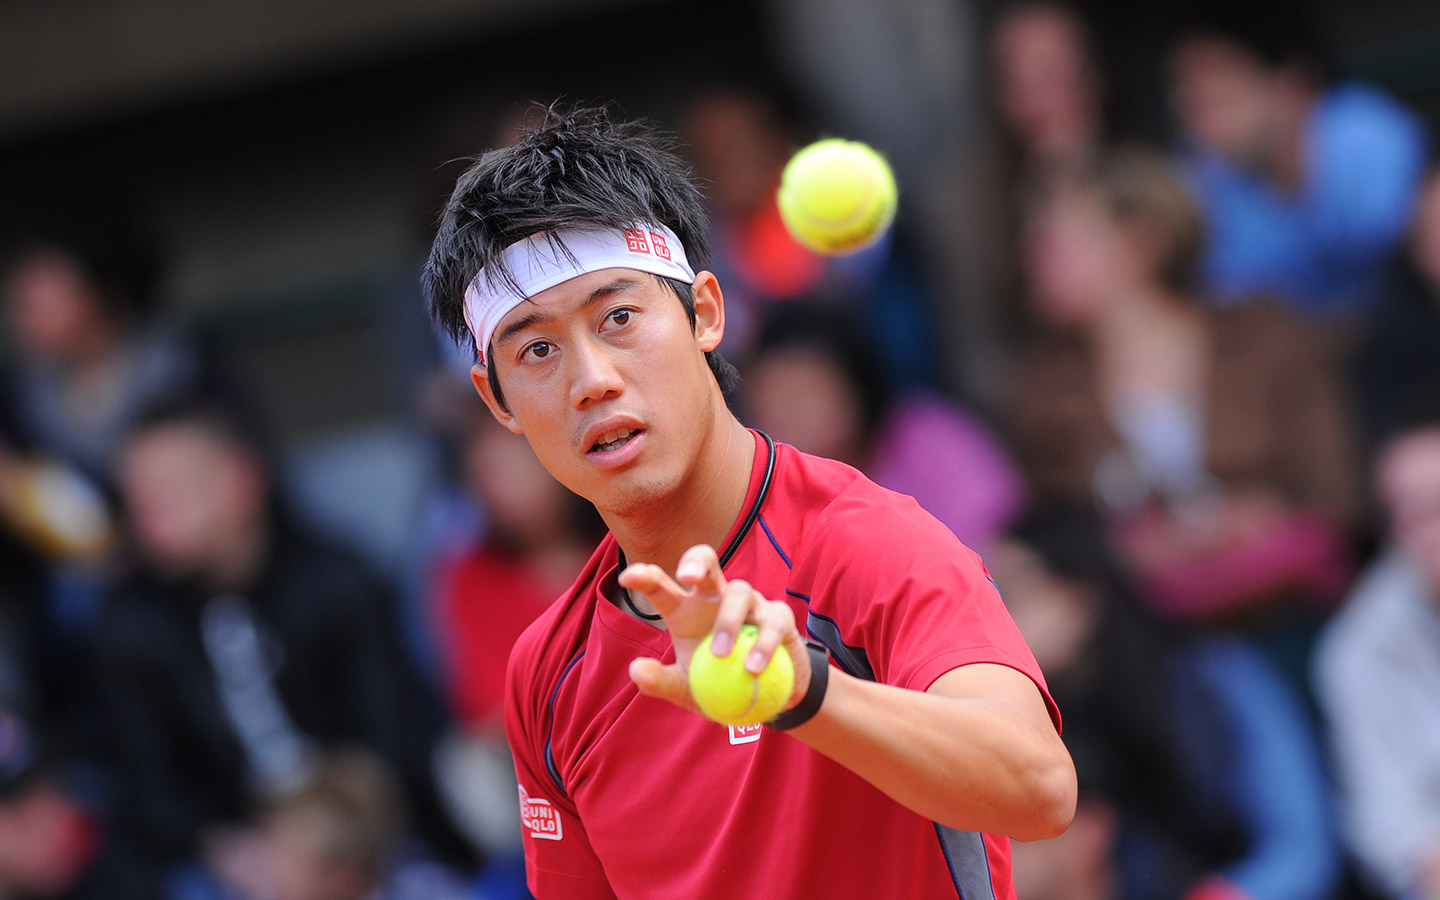 Kei Nishikori Withdraws from Cincinnati Following Surgery | STEVE G ...: www.stevegtennis.com/2014/08/kei-nishikori-withdraws-from...